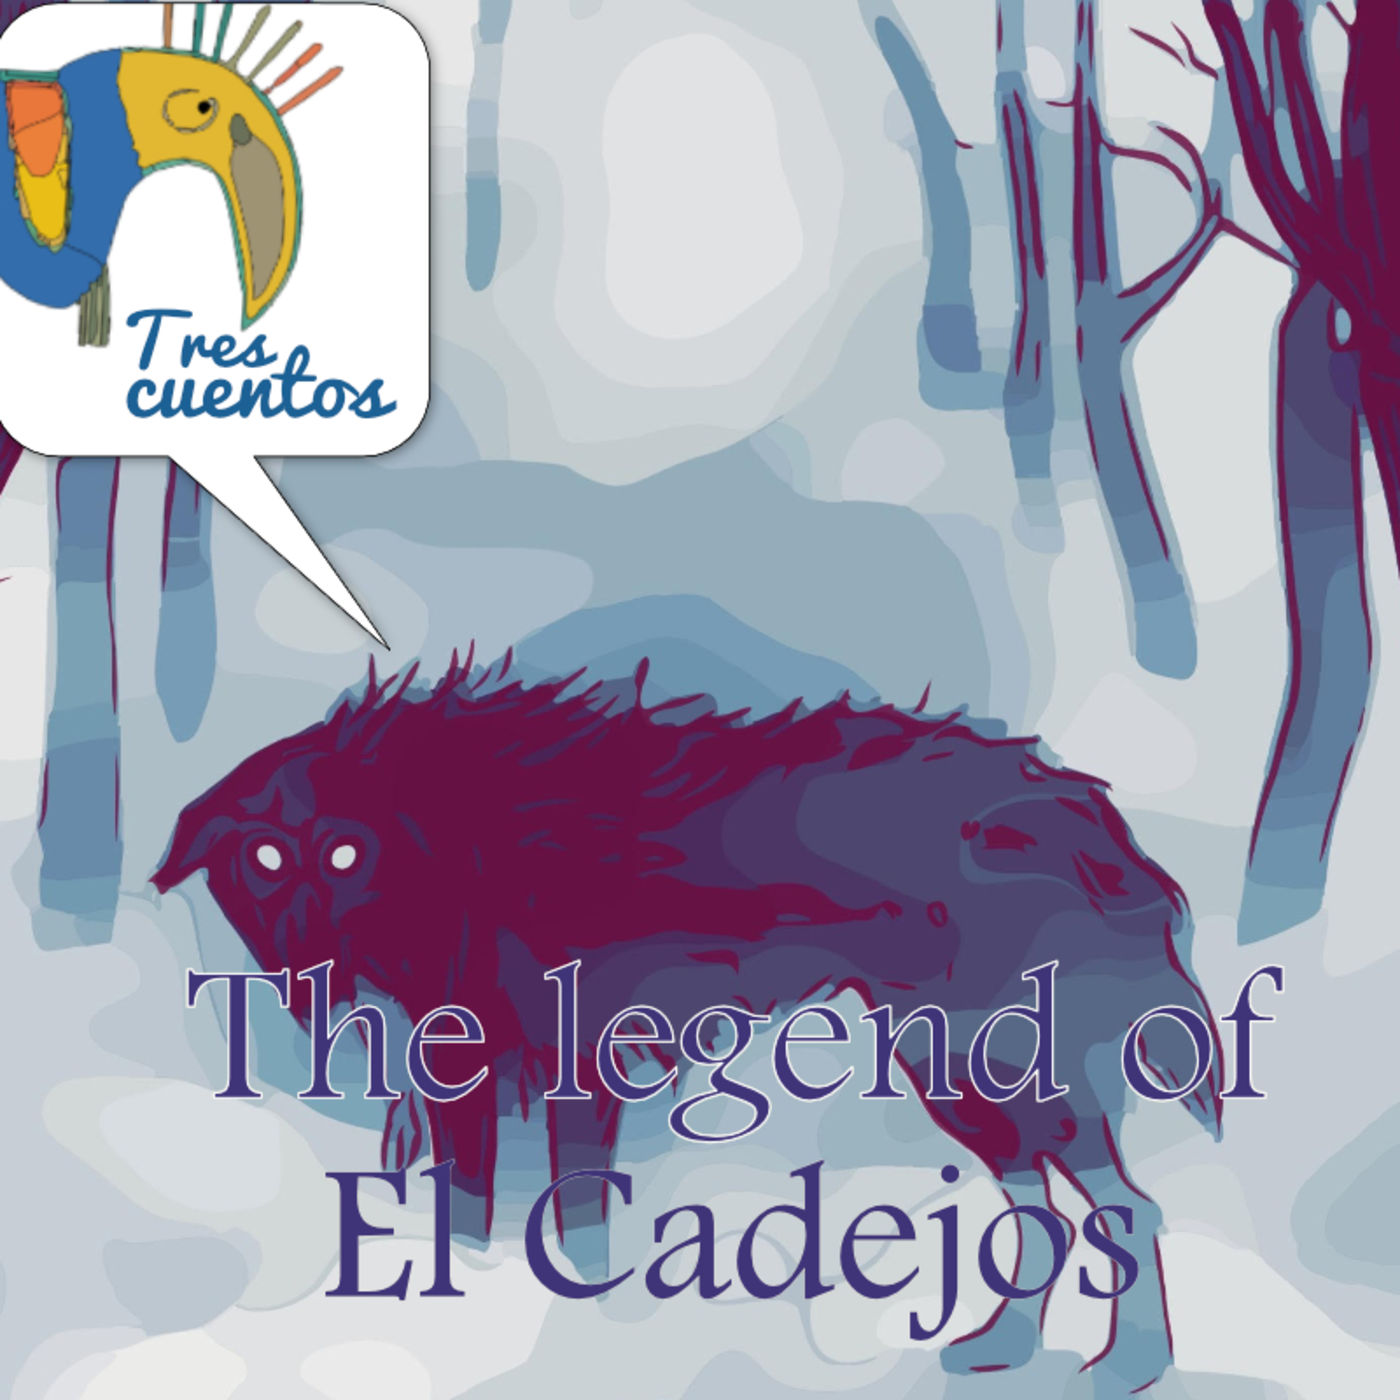 8- Phantoms - The Legend of El Cadejos  - Costa Rica/Guatemala